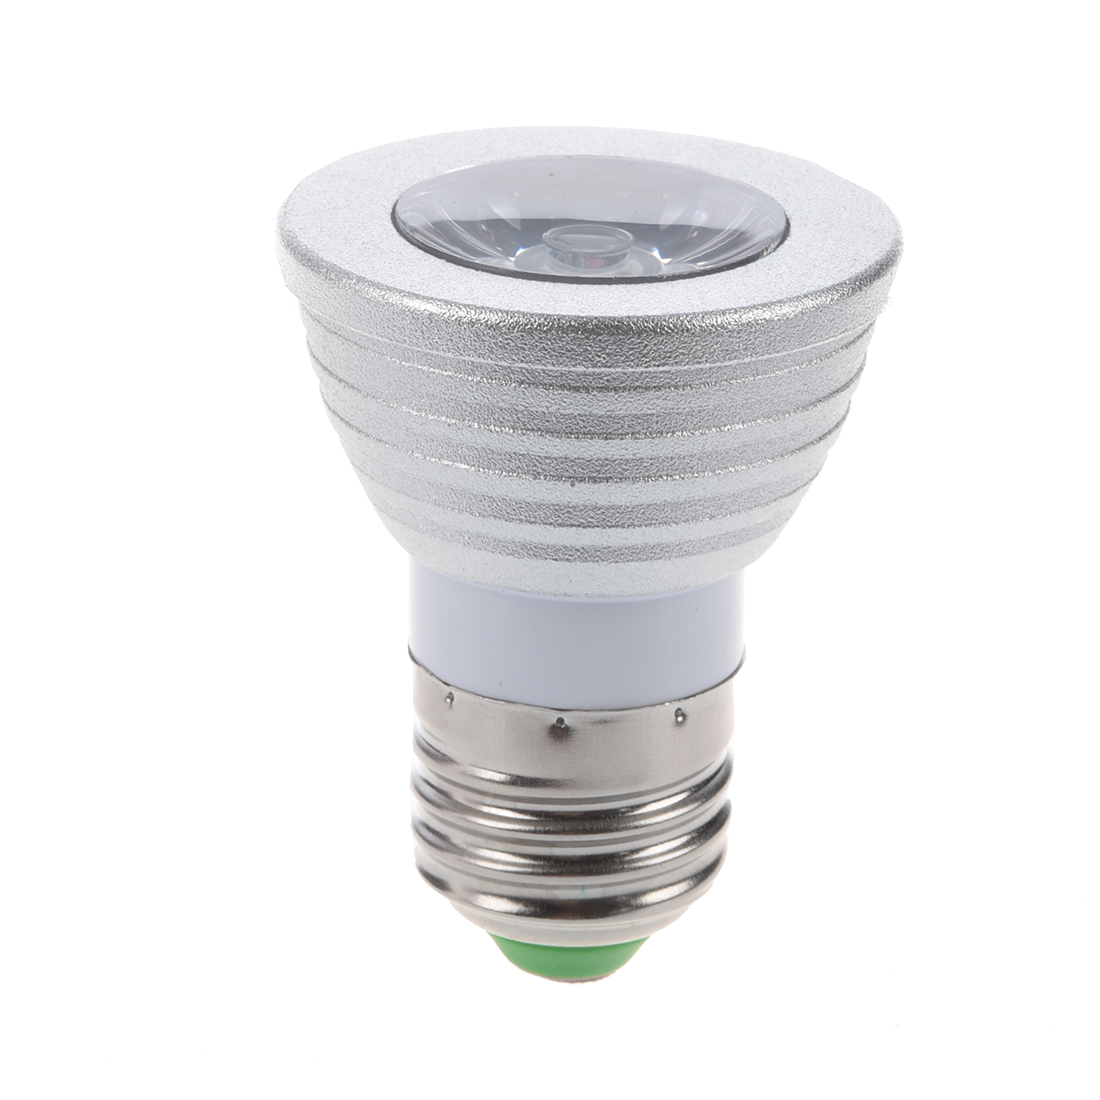 15he 16 Color E27 Remote Control 3w Rgb Led Light Bulb Lamp Cr2025 Coin Battery Ebay